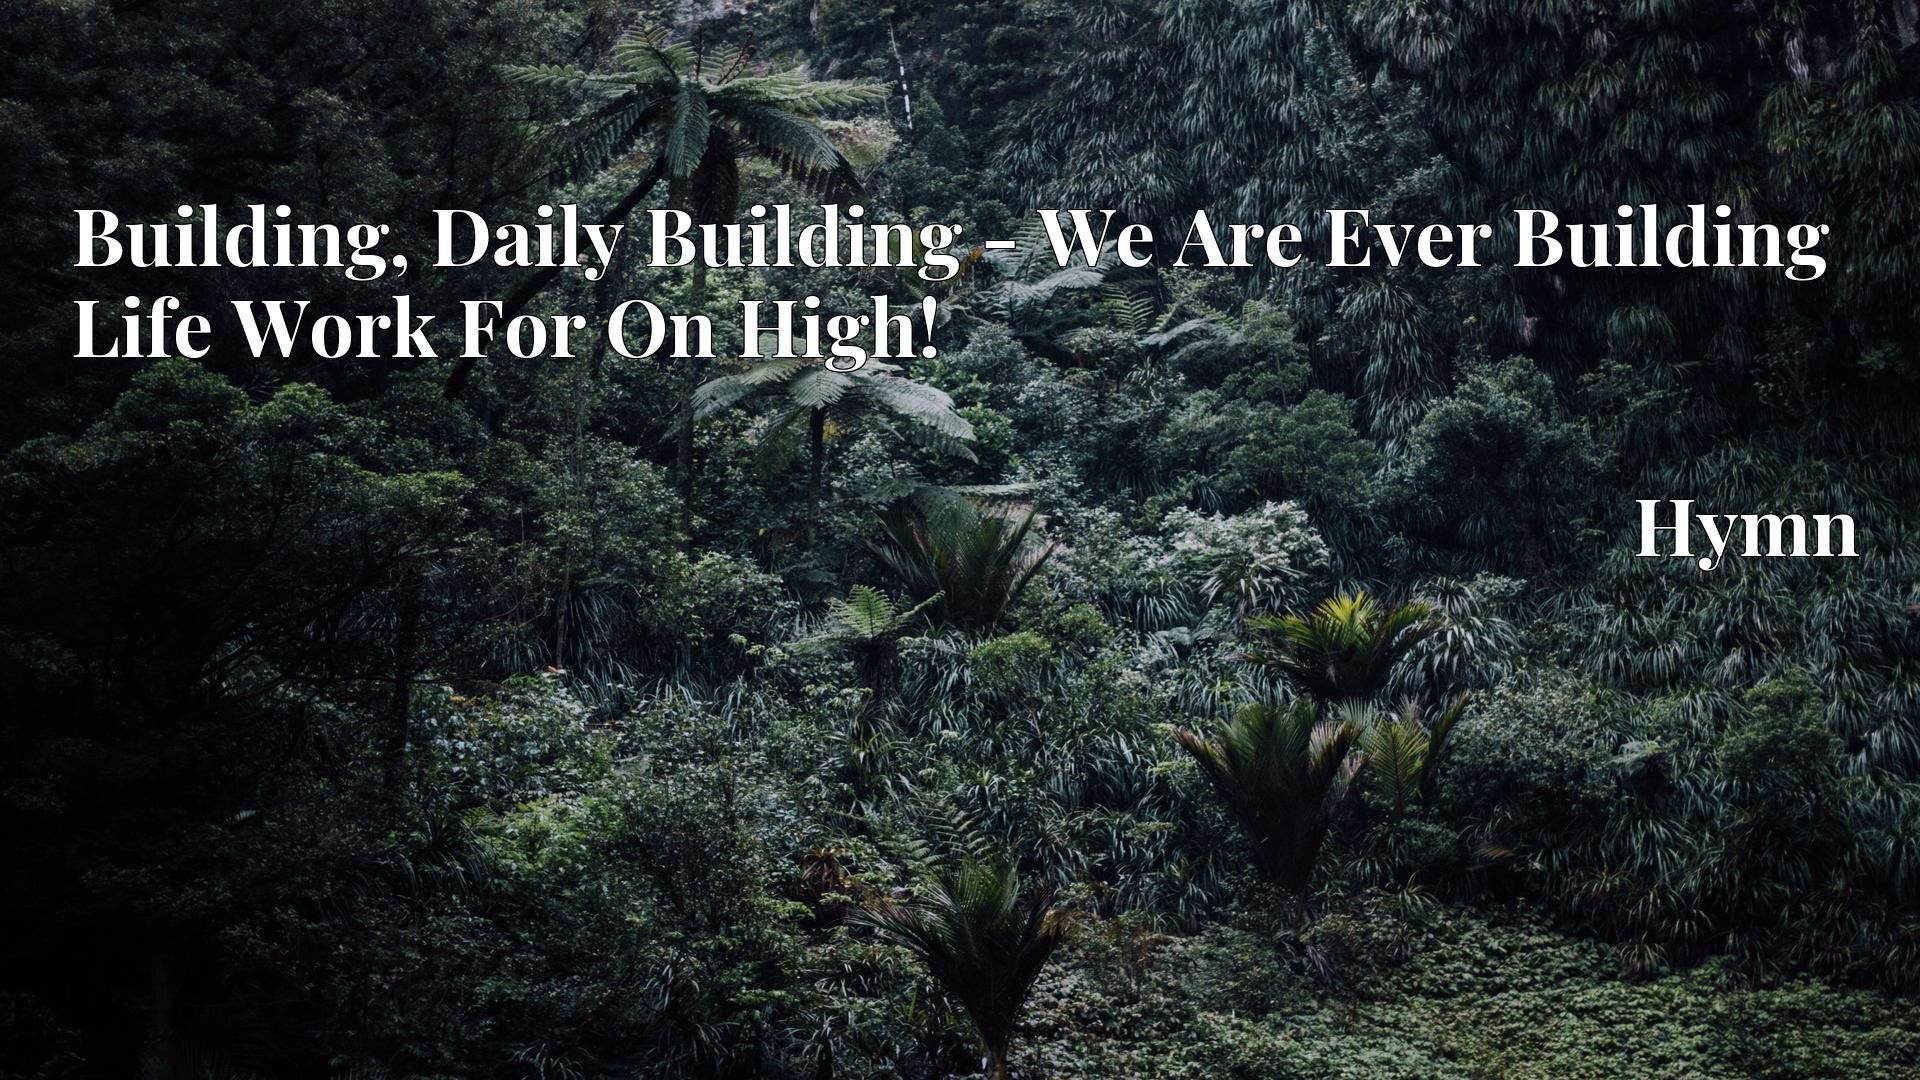 Building, Daily Building - We Are Ever Building Life Work For On High! - Hymn